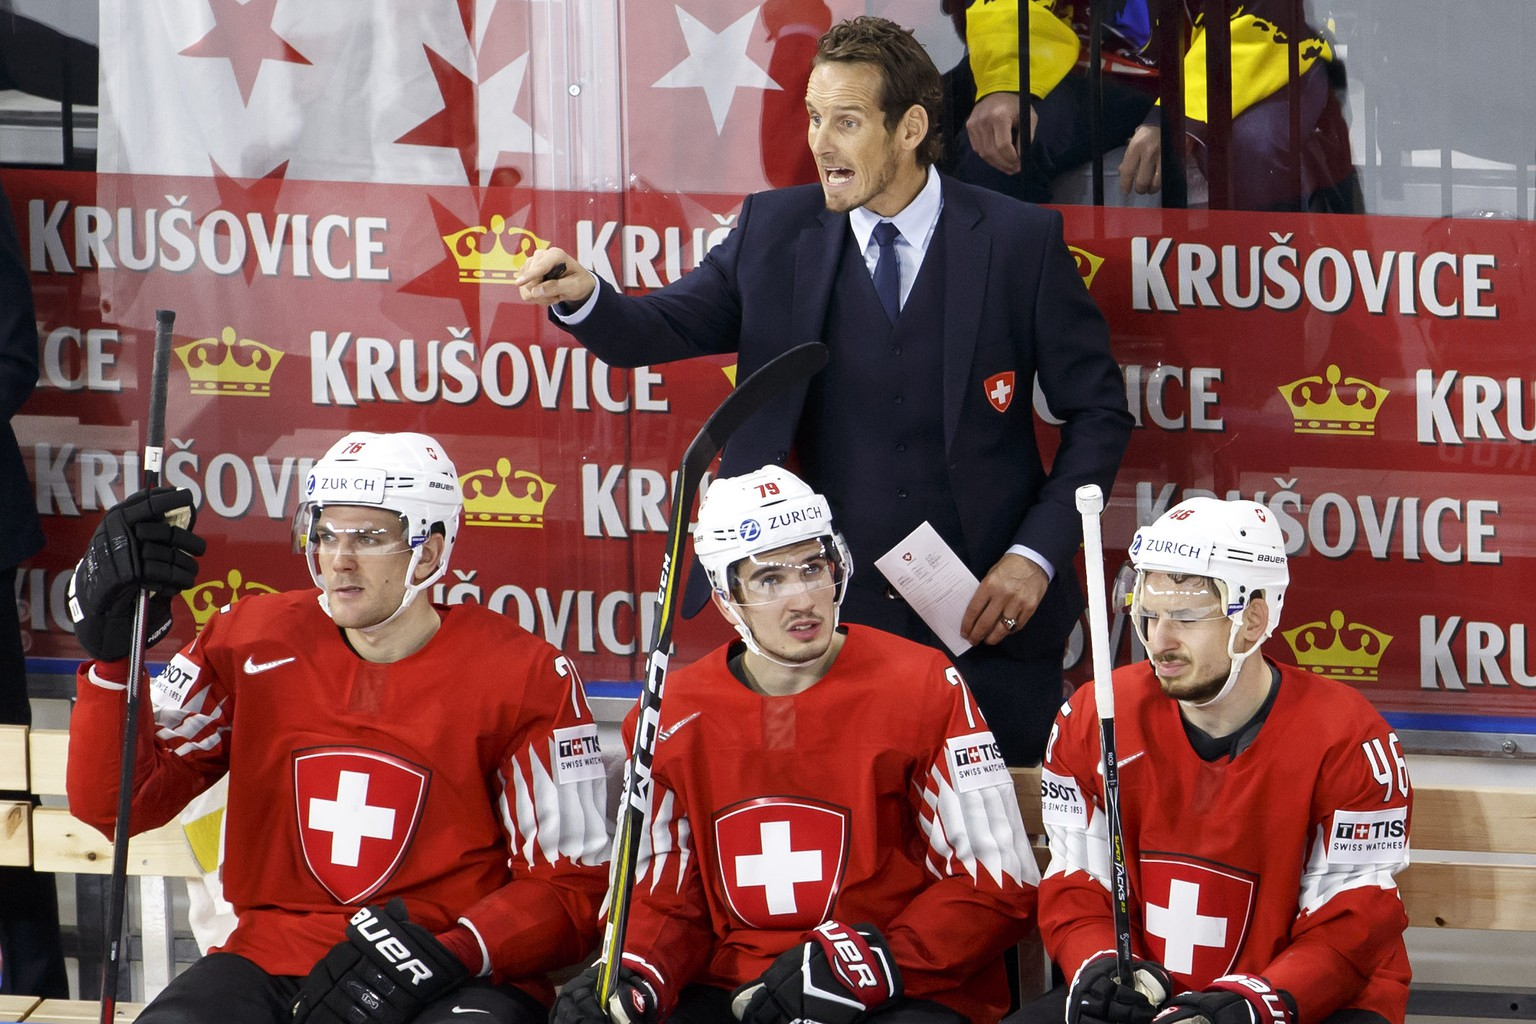 Patrick Fischer, head coach of Switzerland national ice hockey team, gestures behind his players defender Joel Genazzi, left, forward Damien Riat, center, and forward Noah Rod, right, during the IIHF 2018 World Championship preliminary round game between Switzerland and Austria, at the Royal Arena, in Copenhagen, Denmark, Saturday, May 5, 2018. (KEYSTONE/Salvatore Di Nolfi)